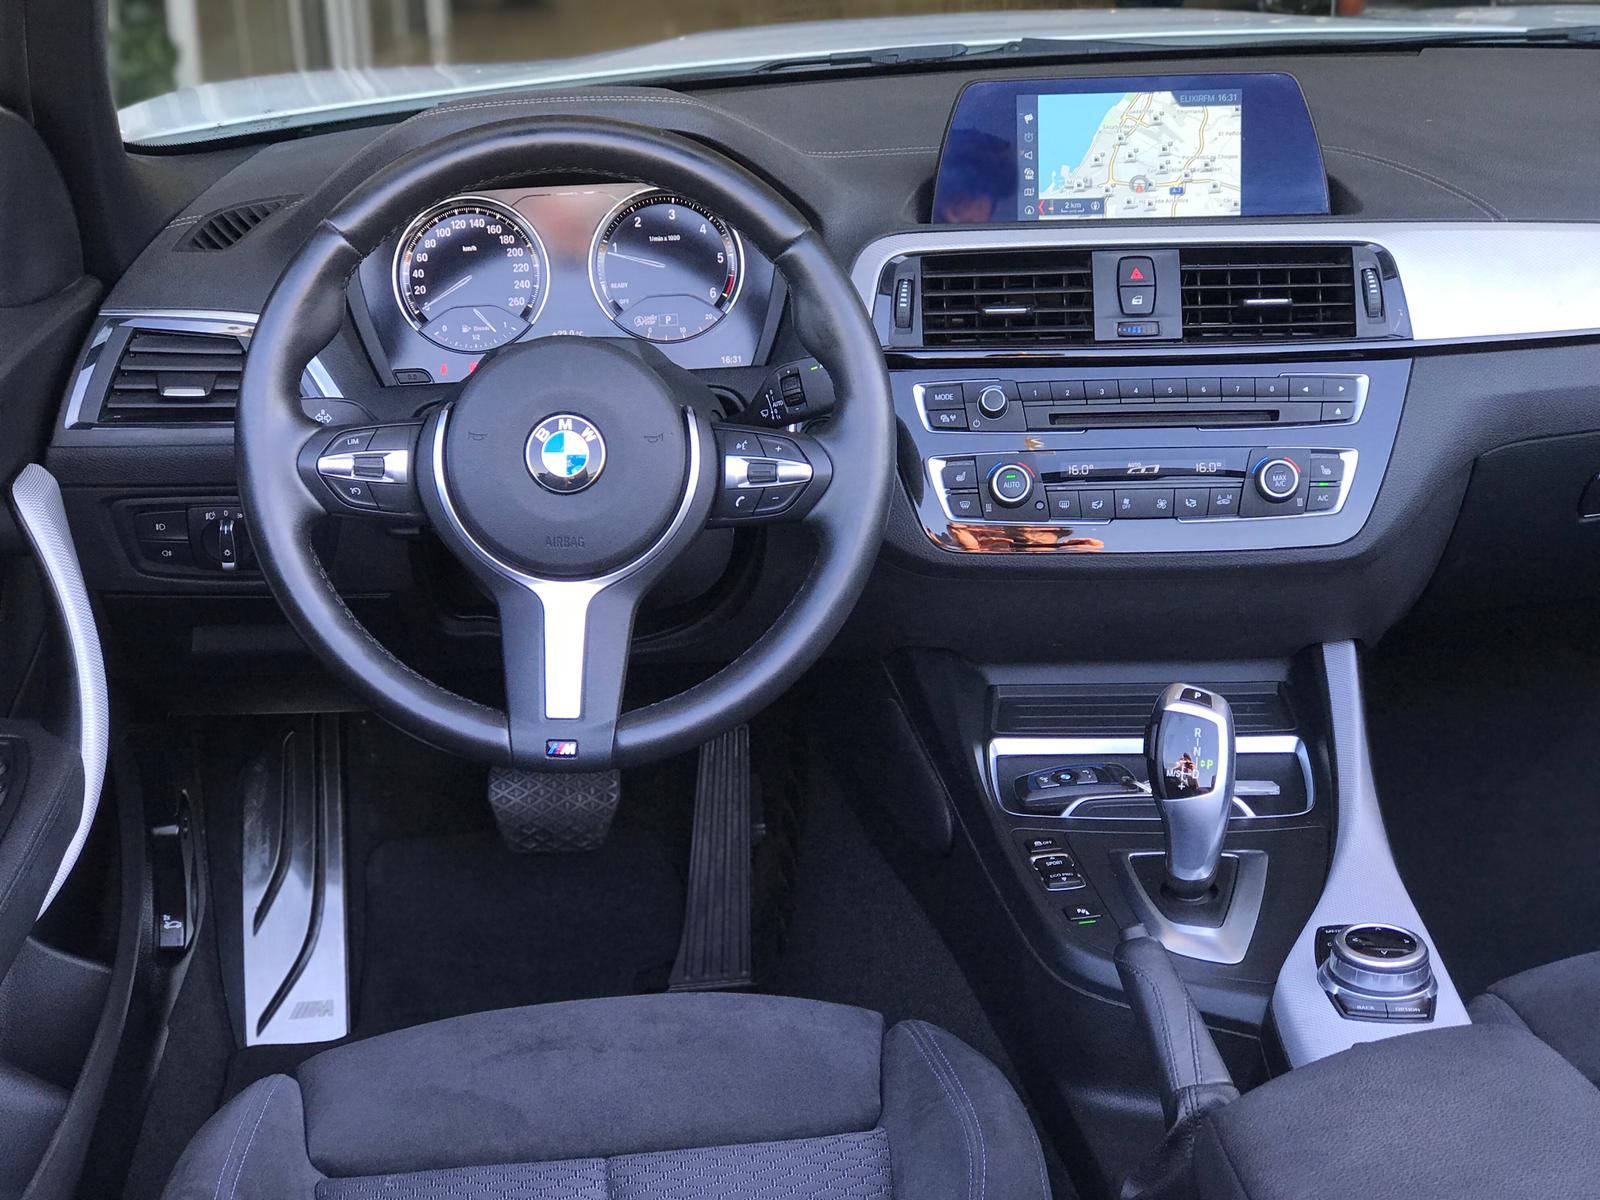 BMW SERIE 2 218dA 150 CV CABRIO M IVA DEDUCIBLE